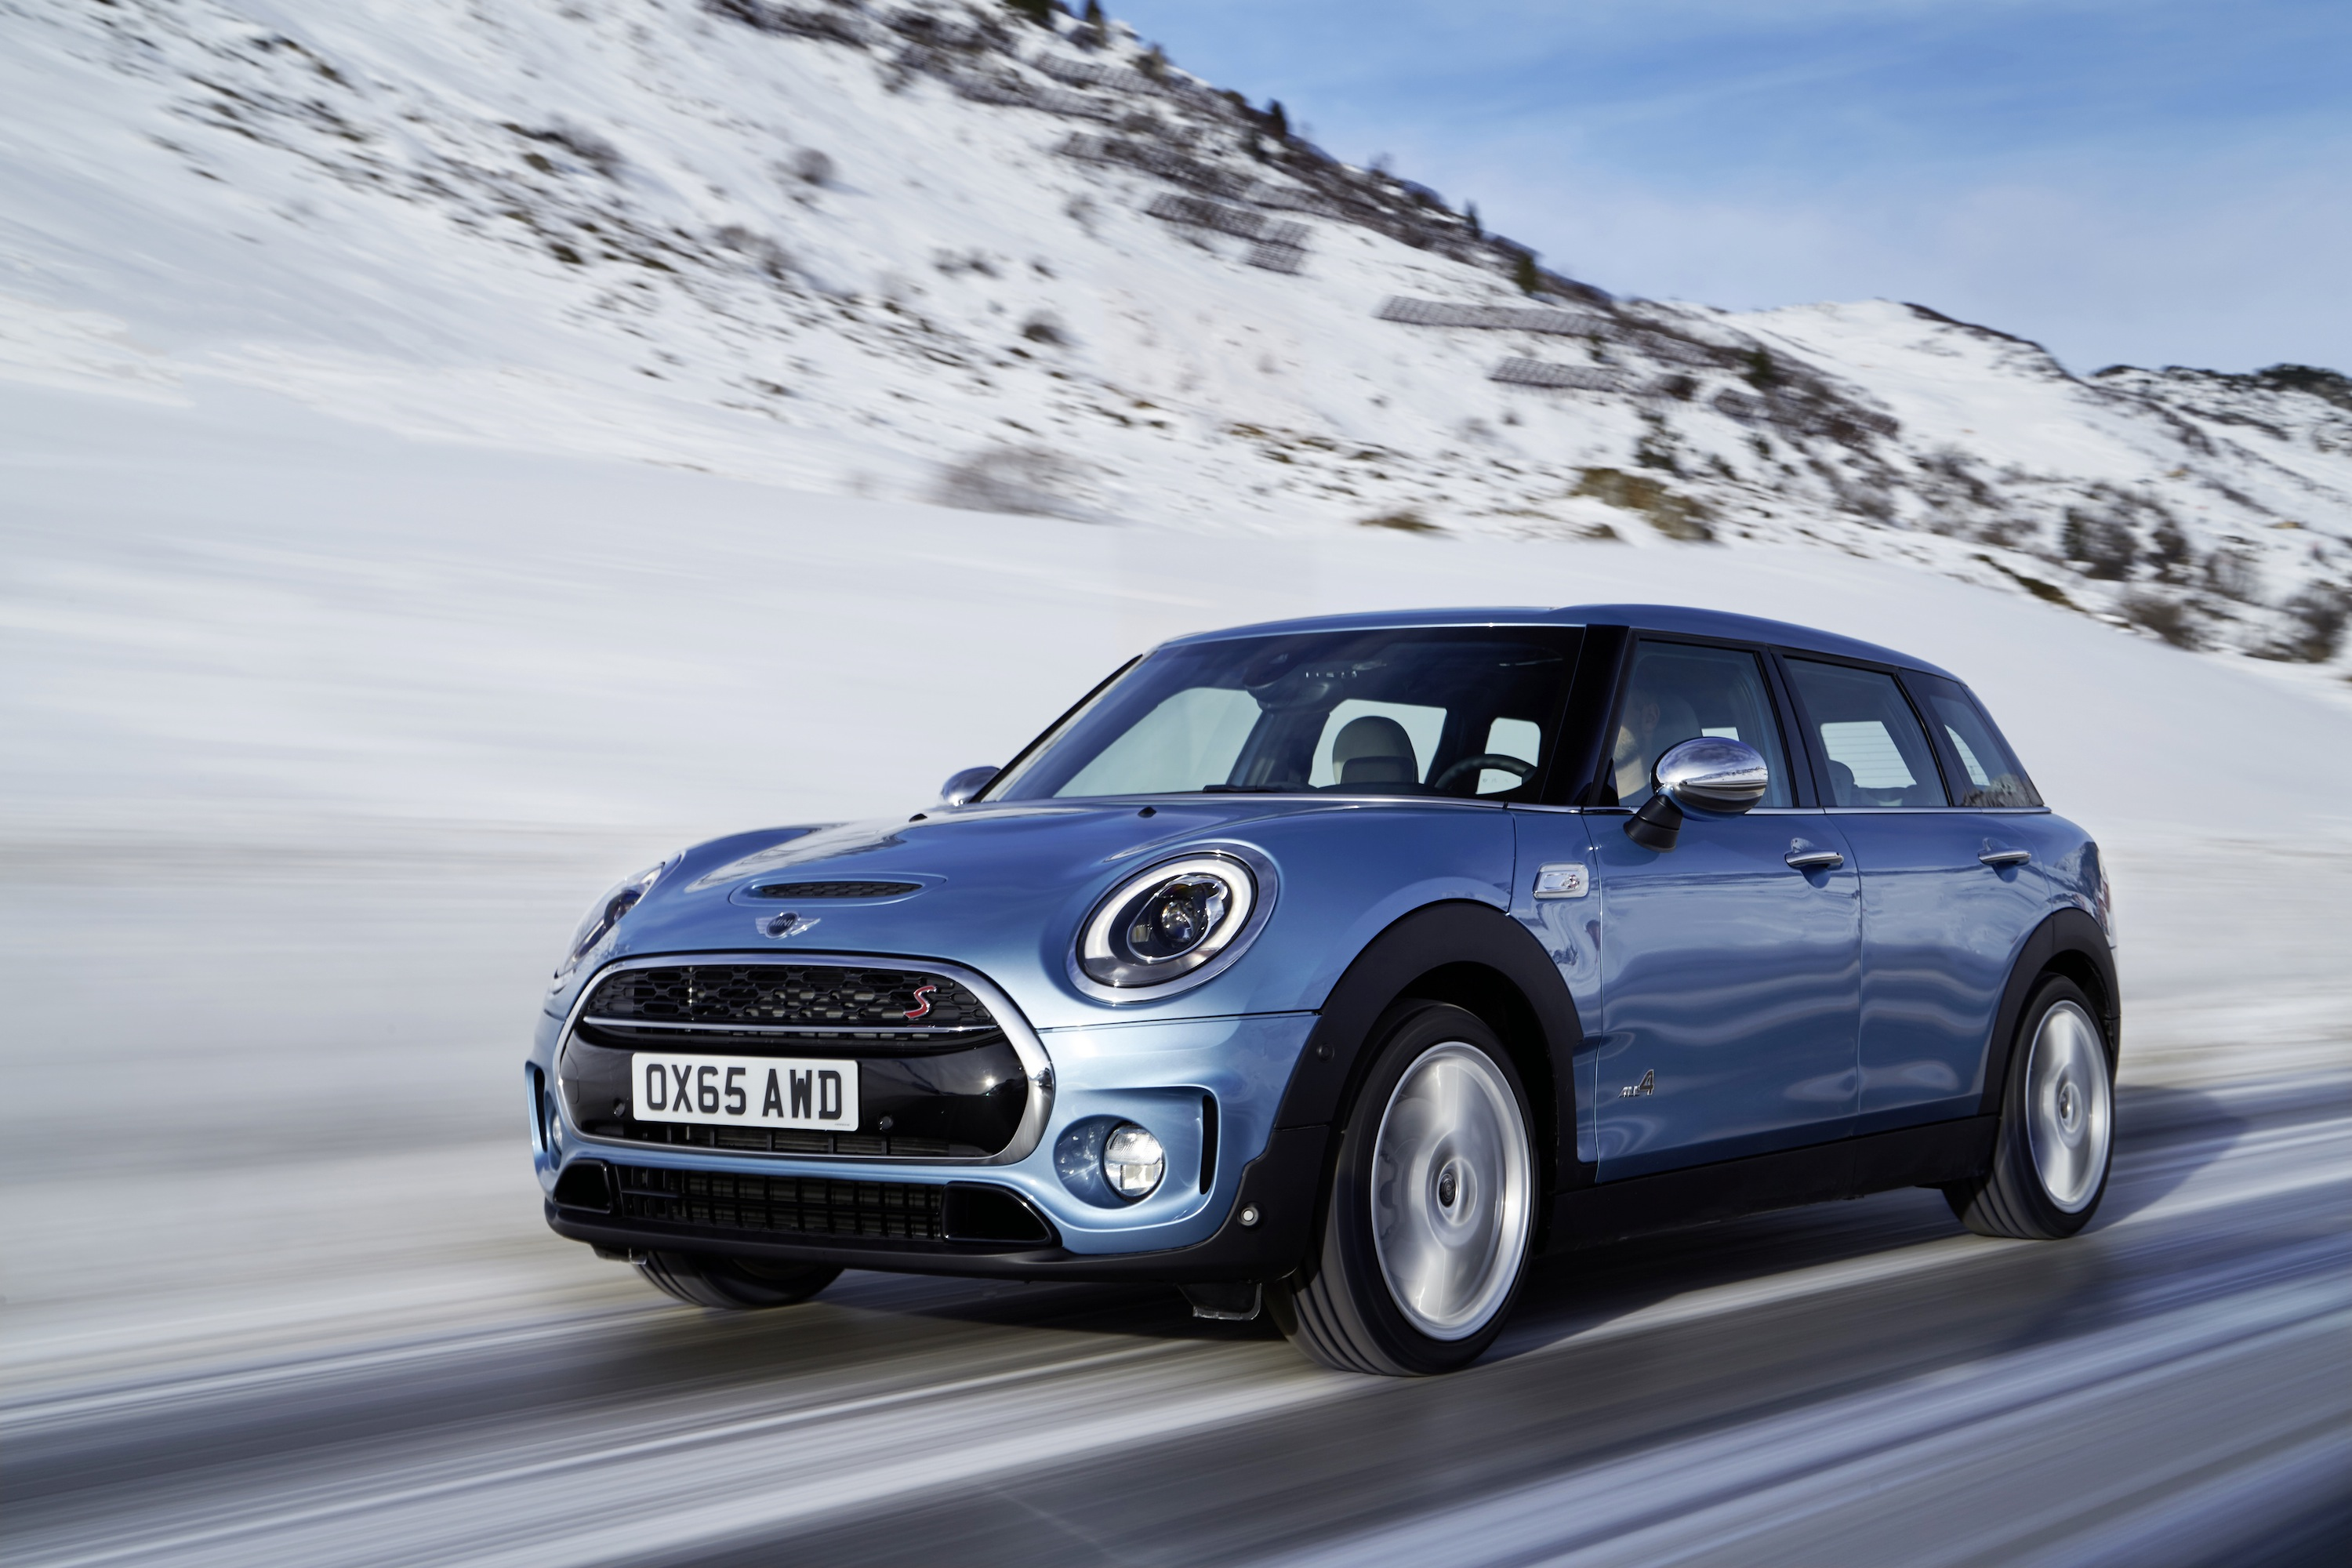 wallpaper sd pictures specs information cooper mini door